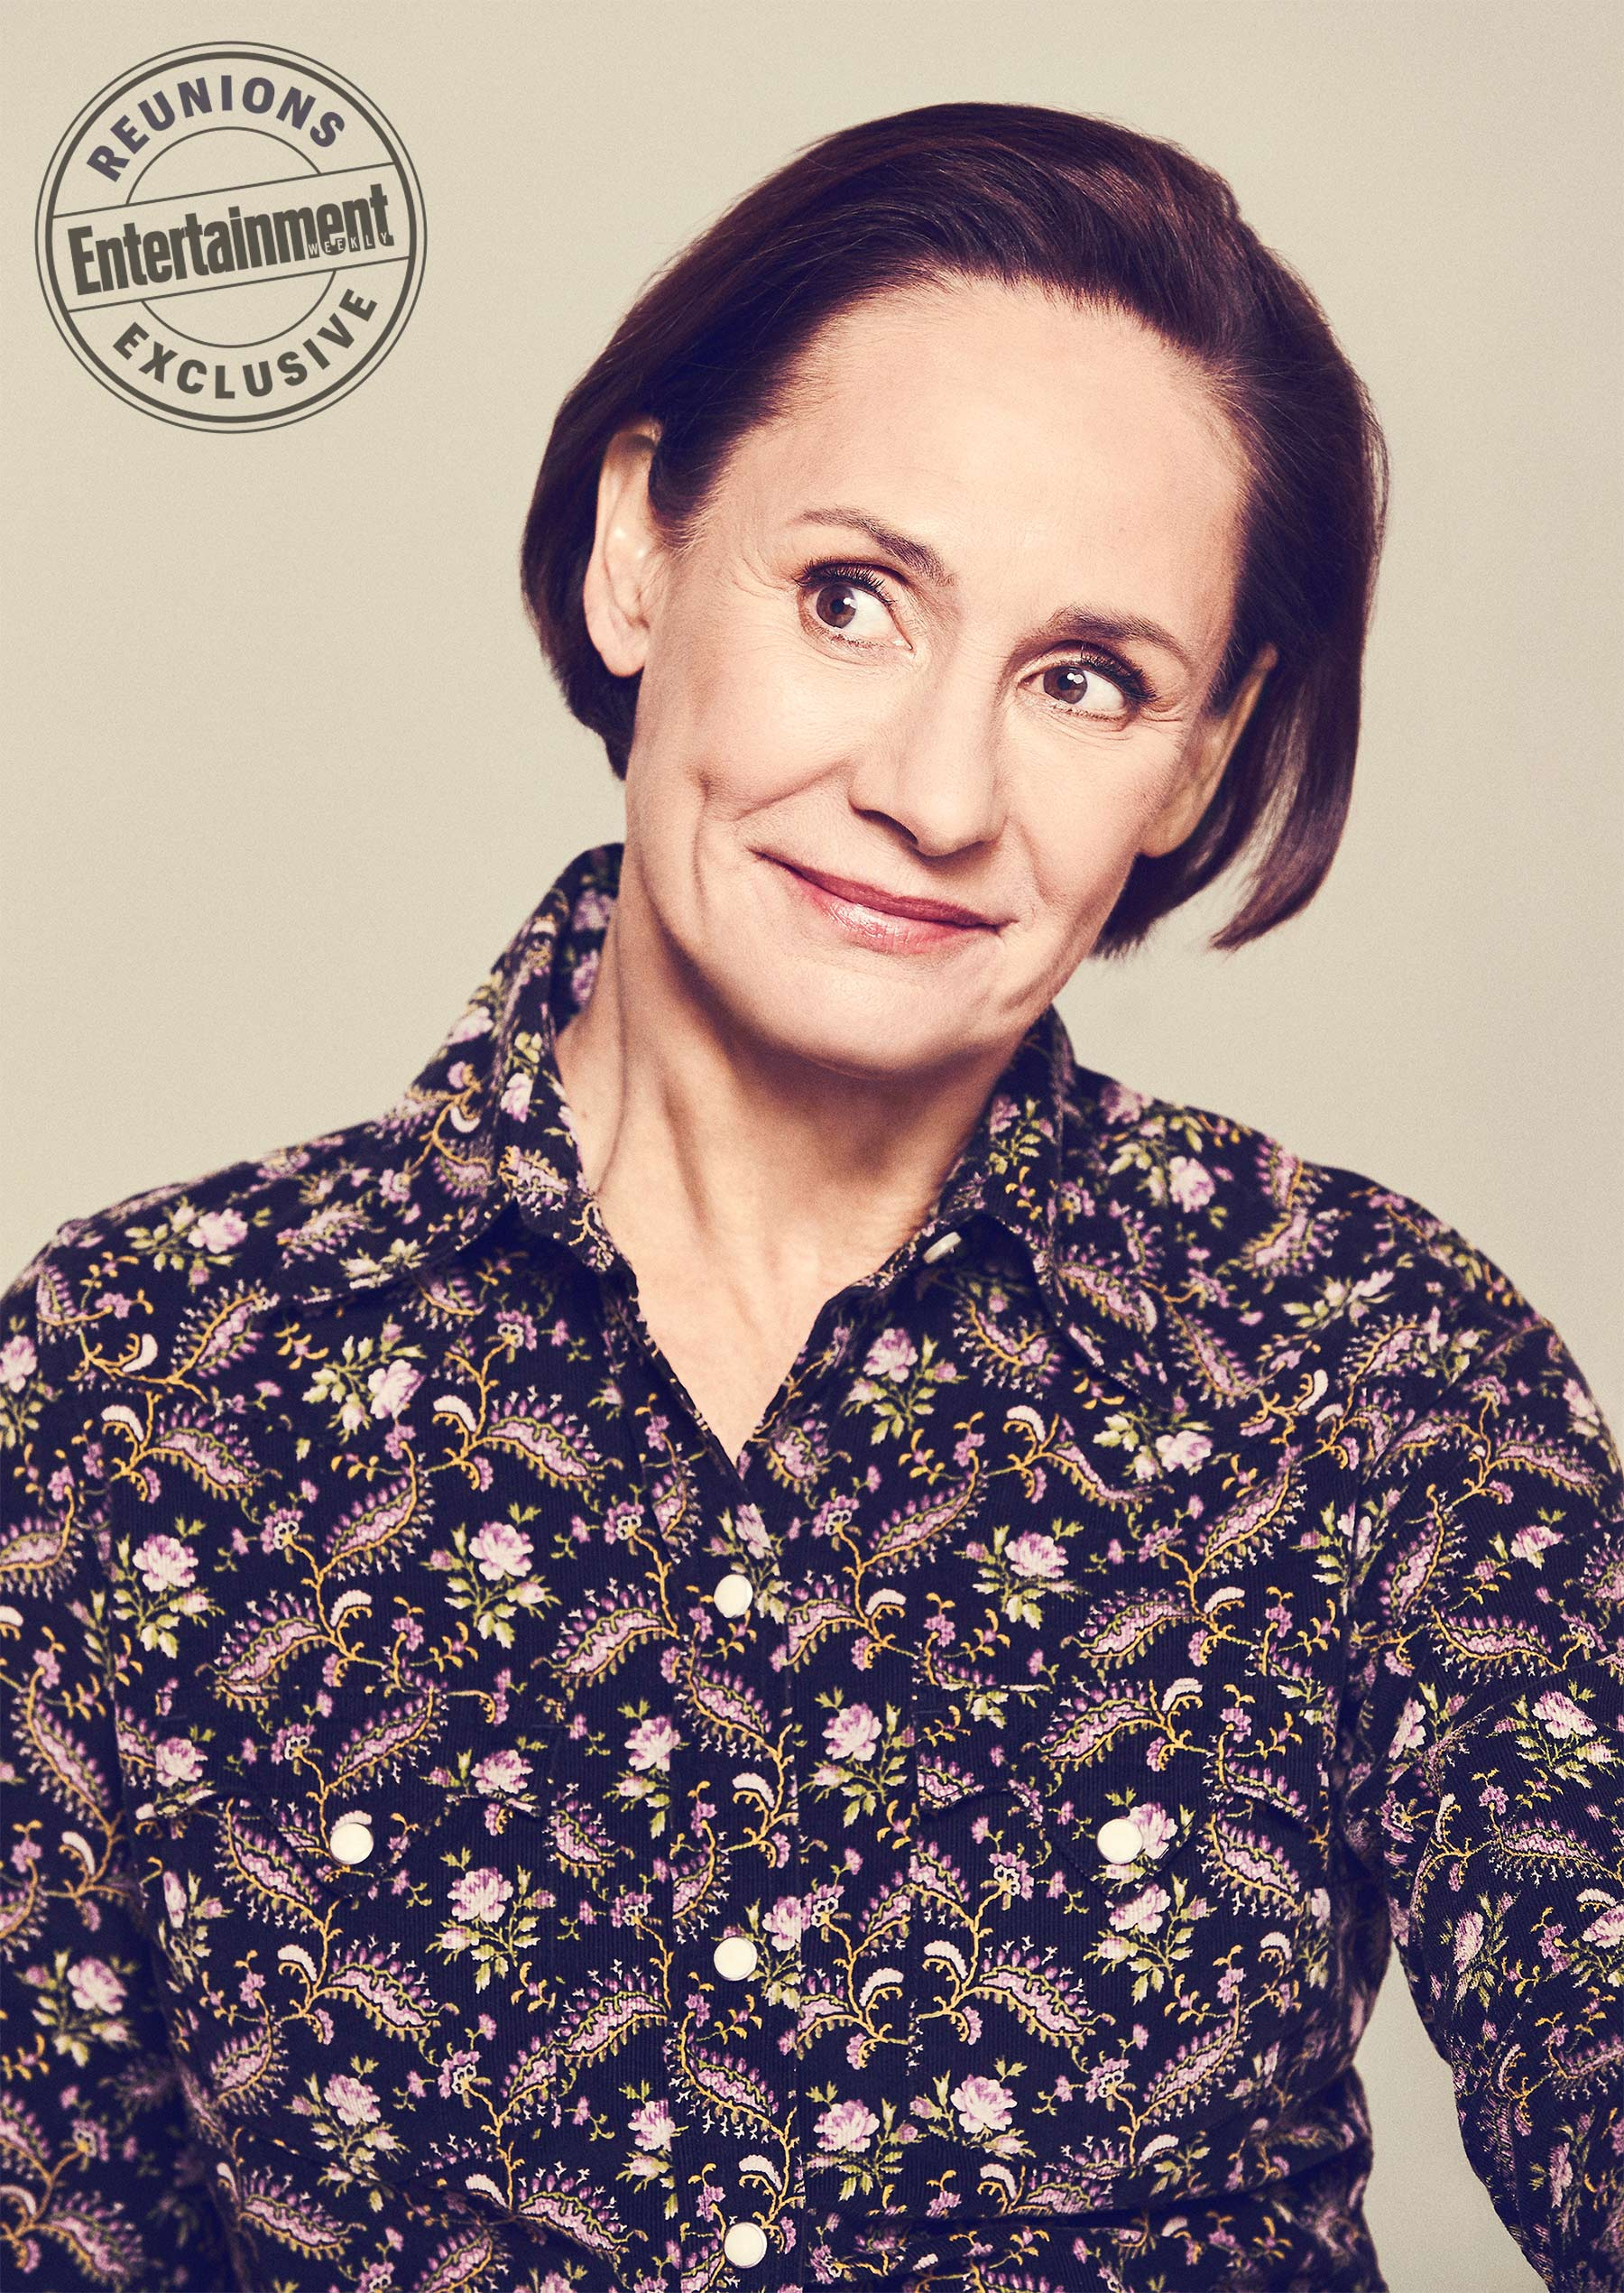 Roseanne images Roseanne Casts Entertainment Weekly Portraits 1800x2541